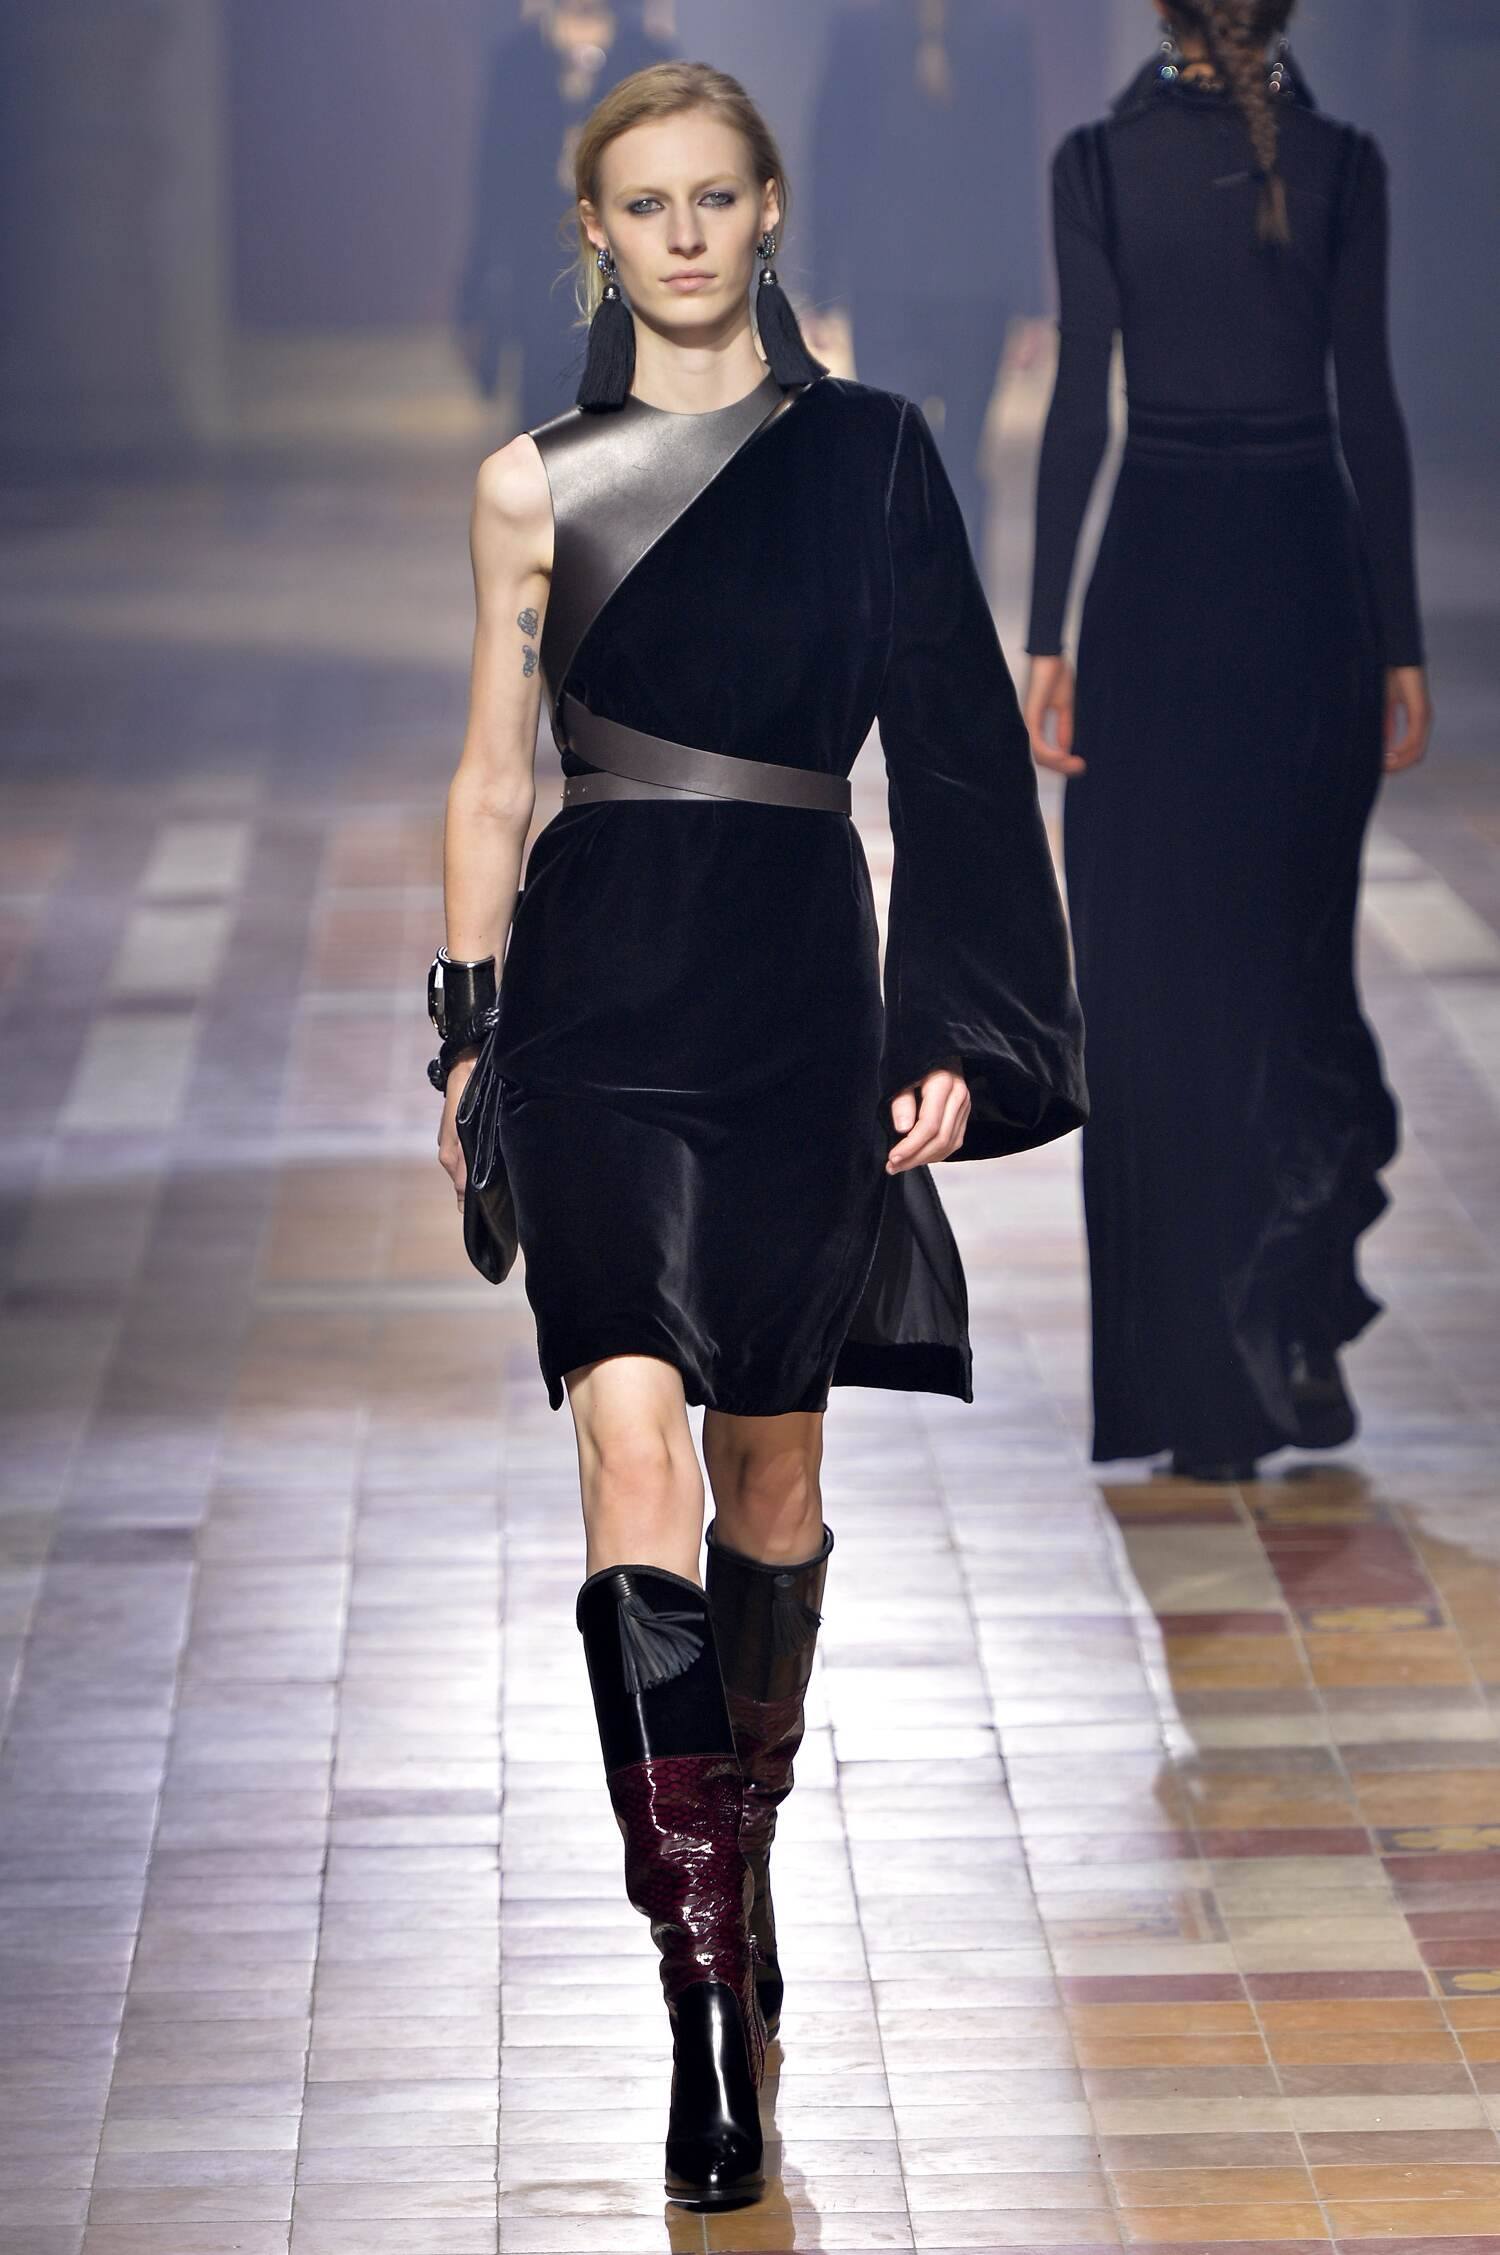 Fashion Show FW 2015 2016 Lanvin Womenswear